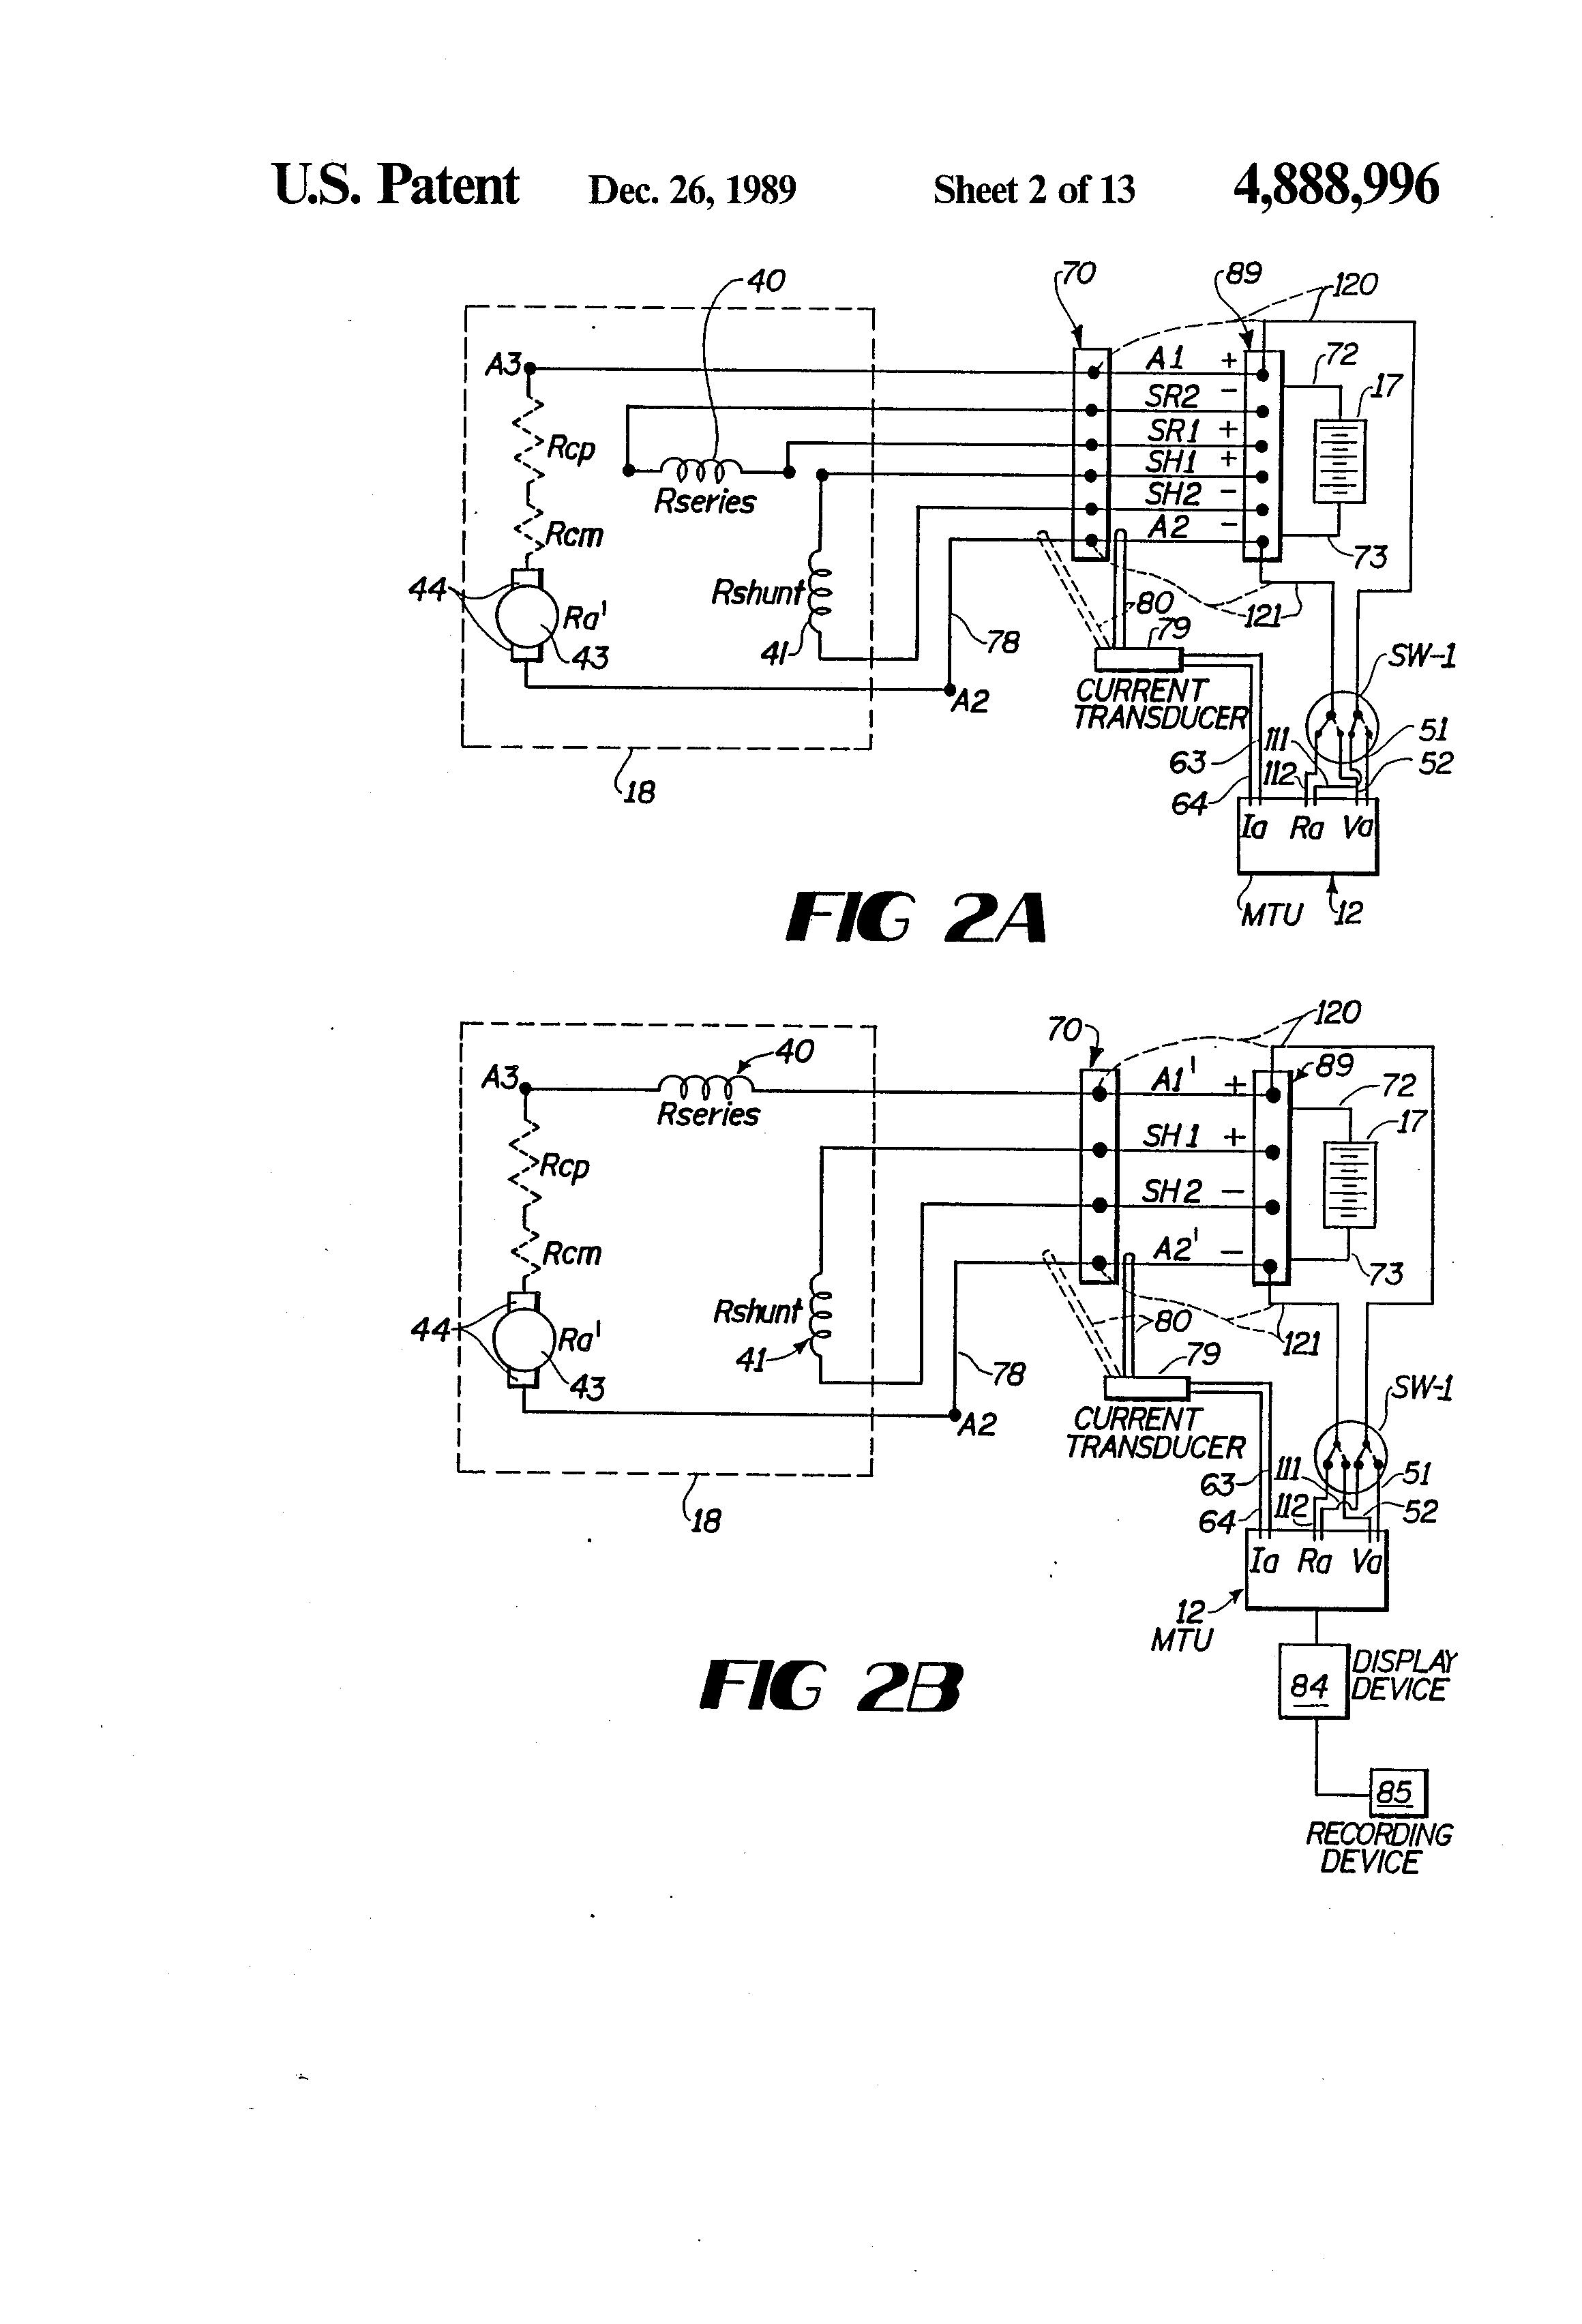 Wiring Diagram Motor Operated Valve : Patent us dc motor operated valve remote